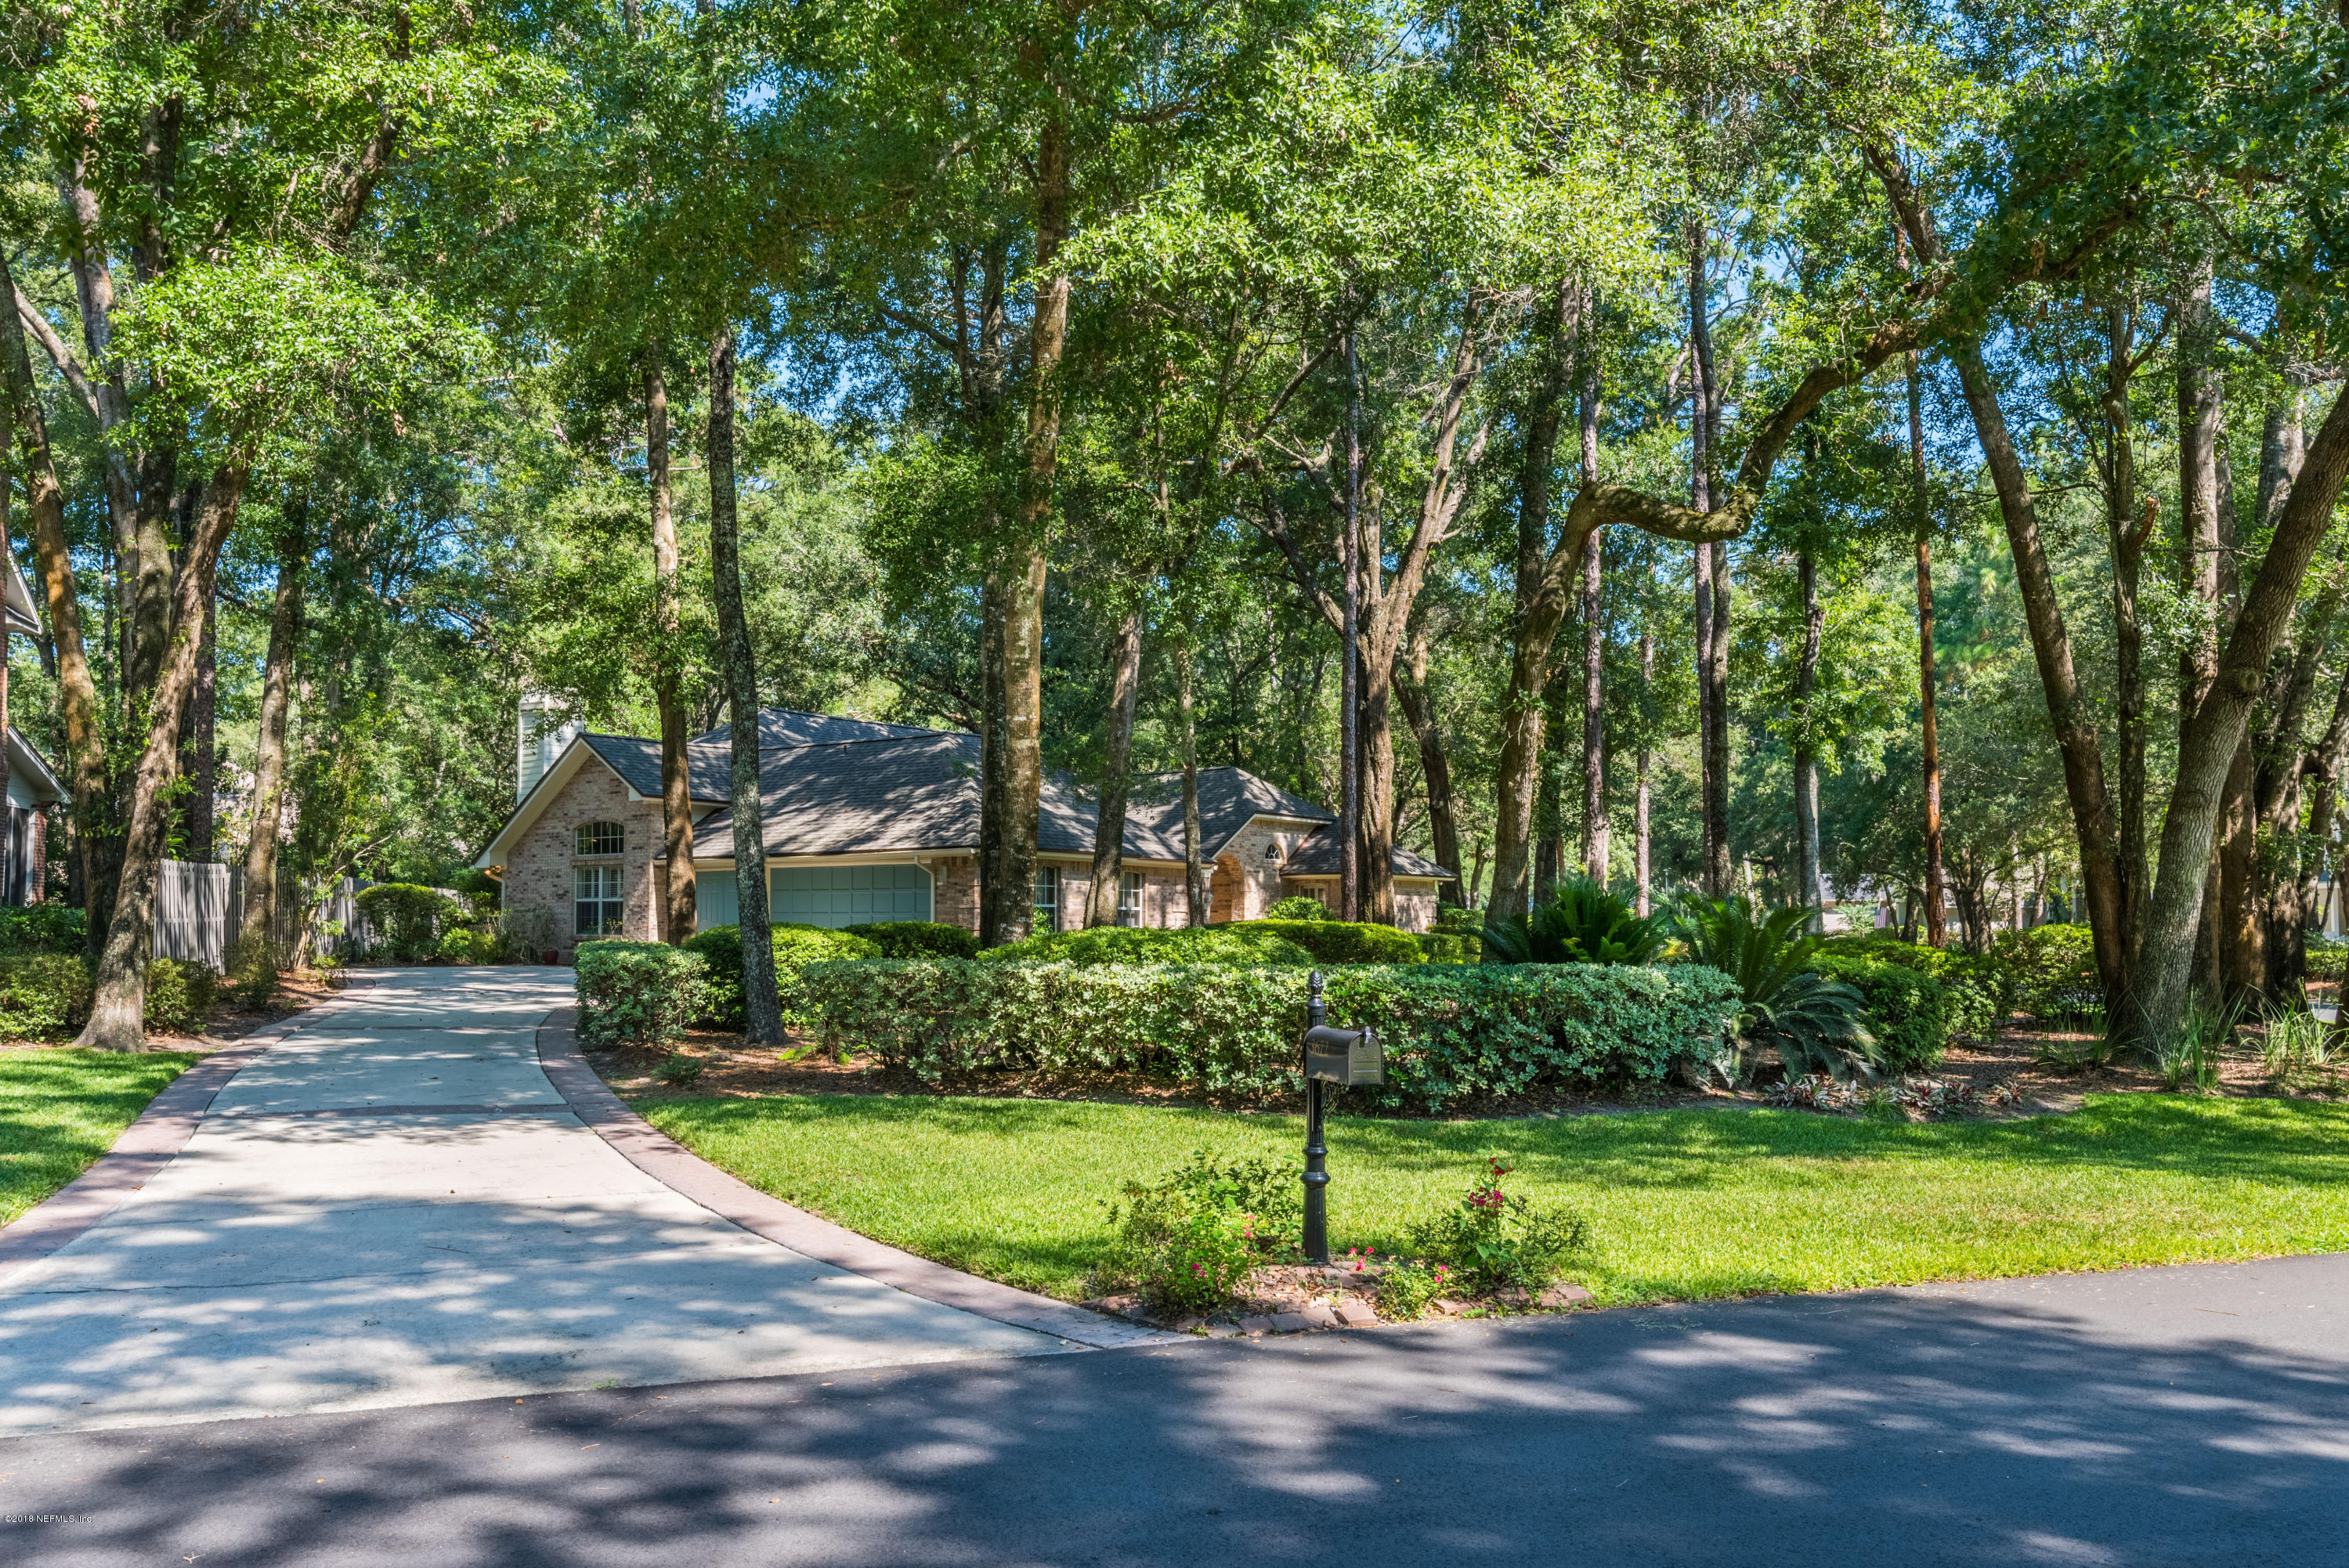 3672 ST ANDREWS, GREEN COVE SPRINGS, FLORIDA 32043, 3 Bedrooms Bedrooms, ,2 BathroomsBathrooms,Residential - single family,For sale,ST ANDREWS,945129